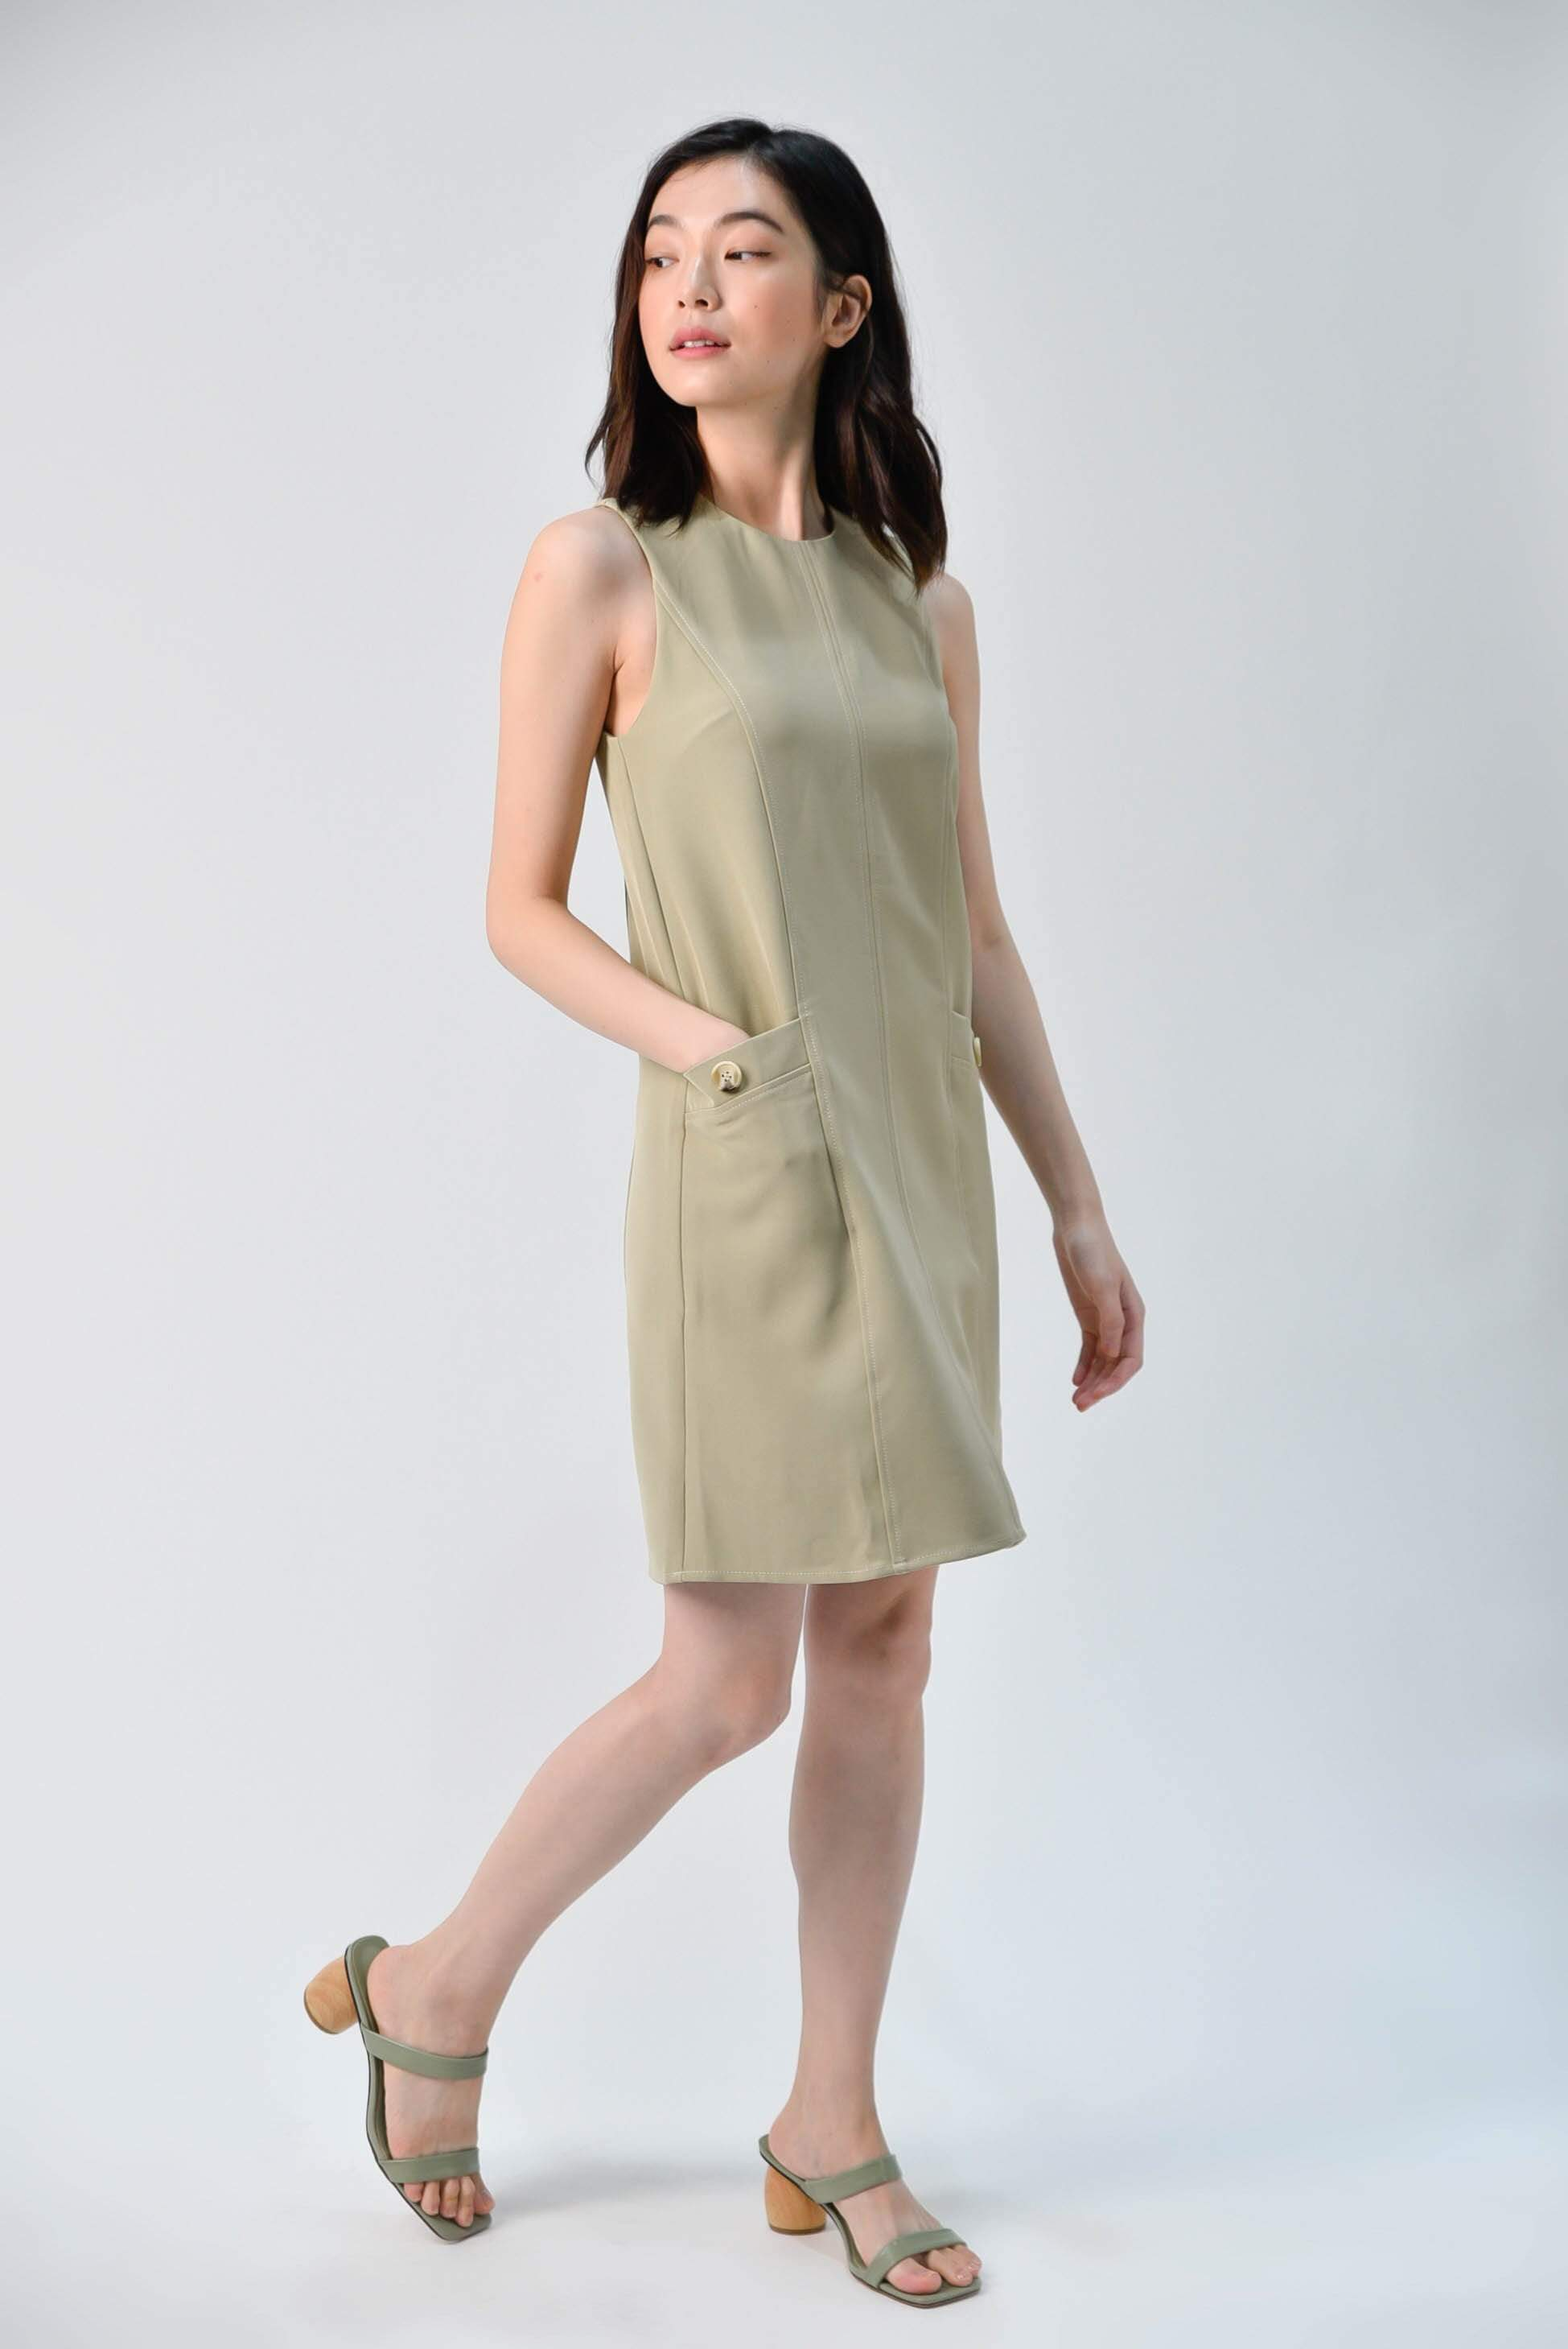 AWE Dresses STITCHED SHIFT DRESS IN LIGHT OLIVE